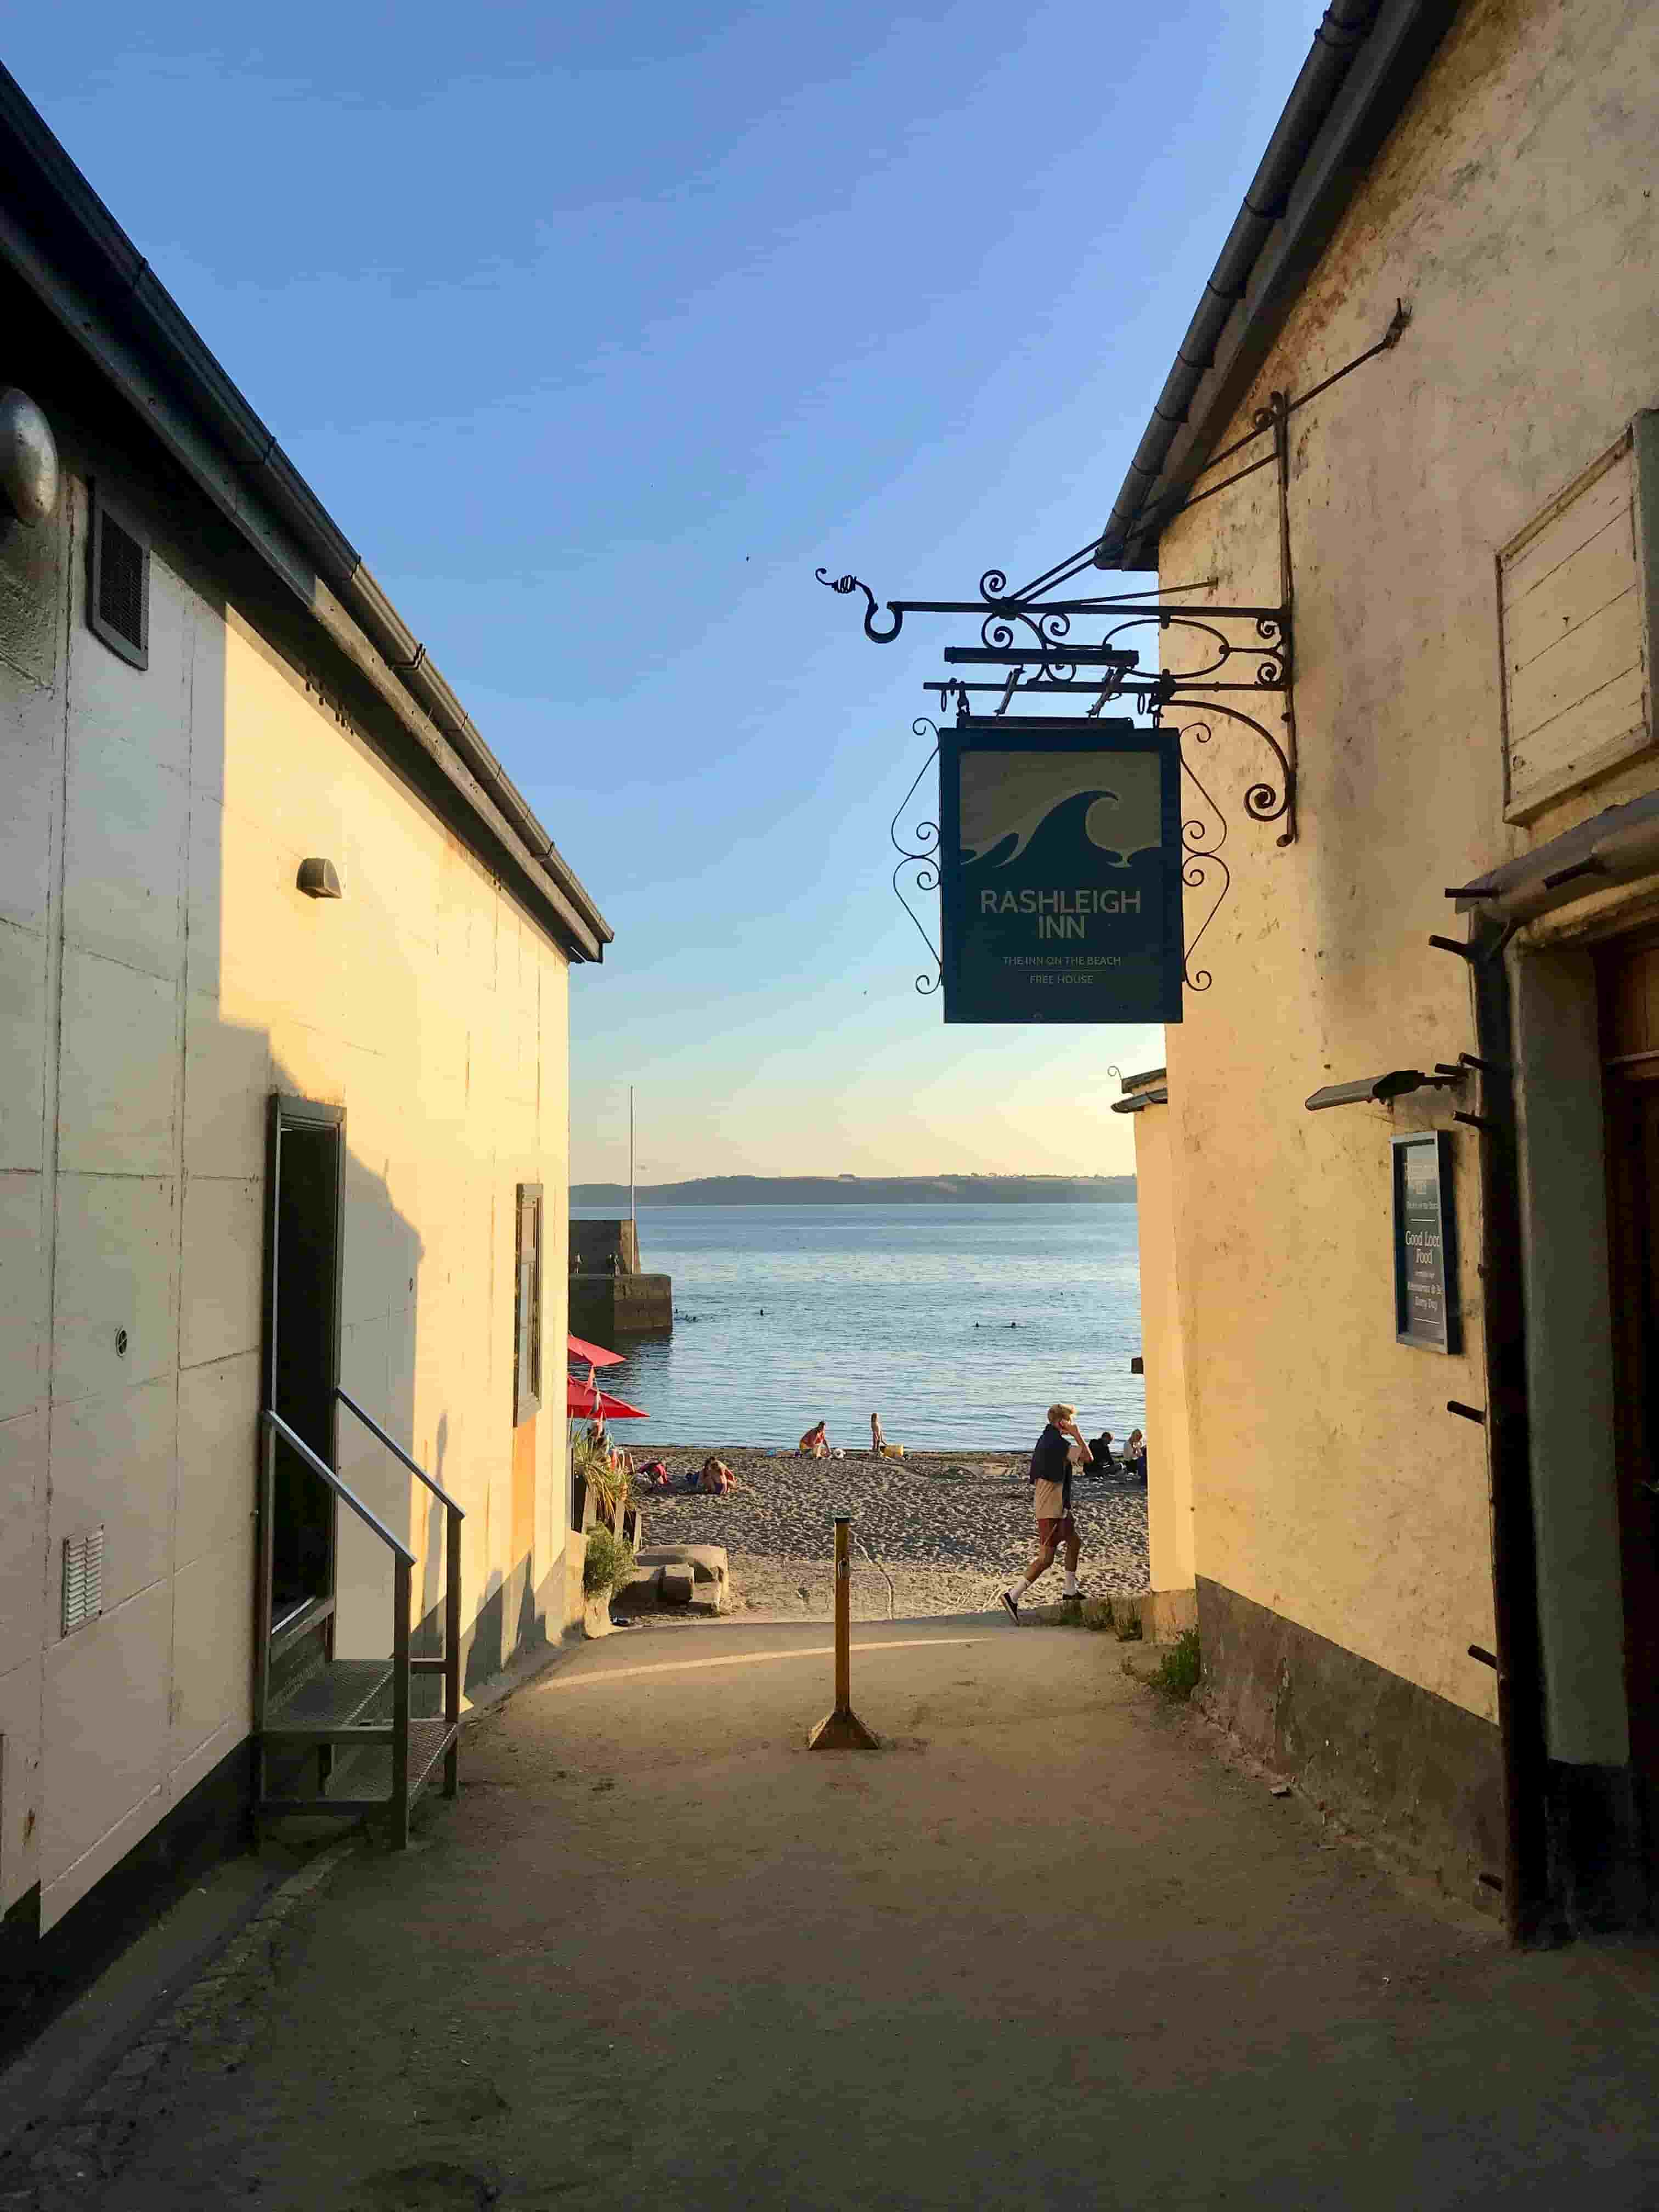 Day Experience: The Roads to Rashleigh – Charlestown and Polkerris